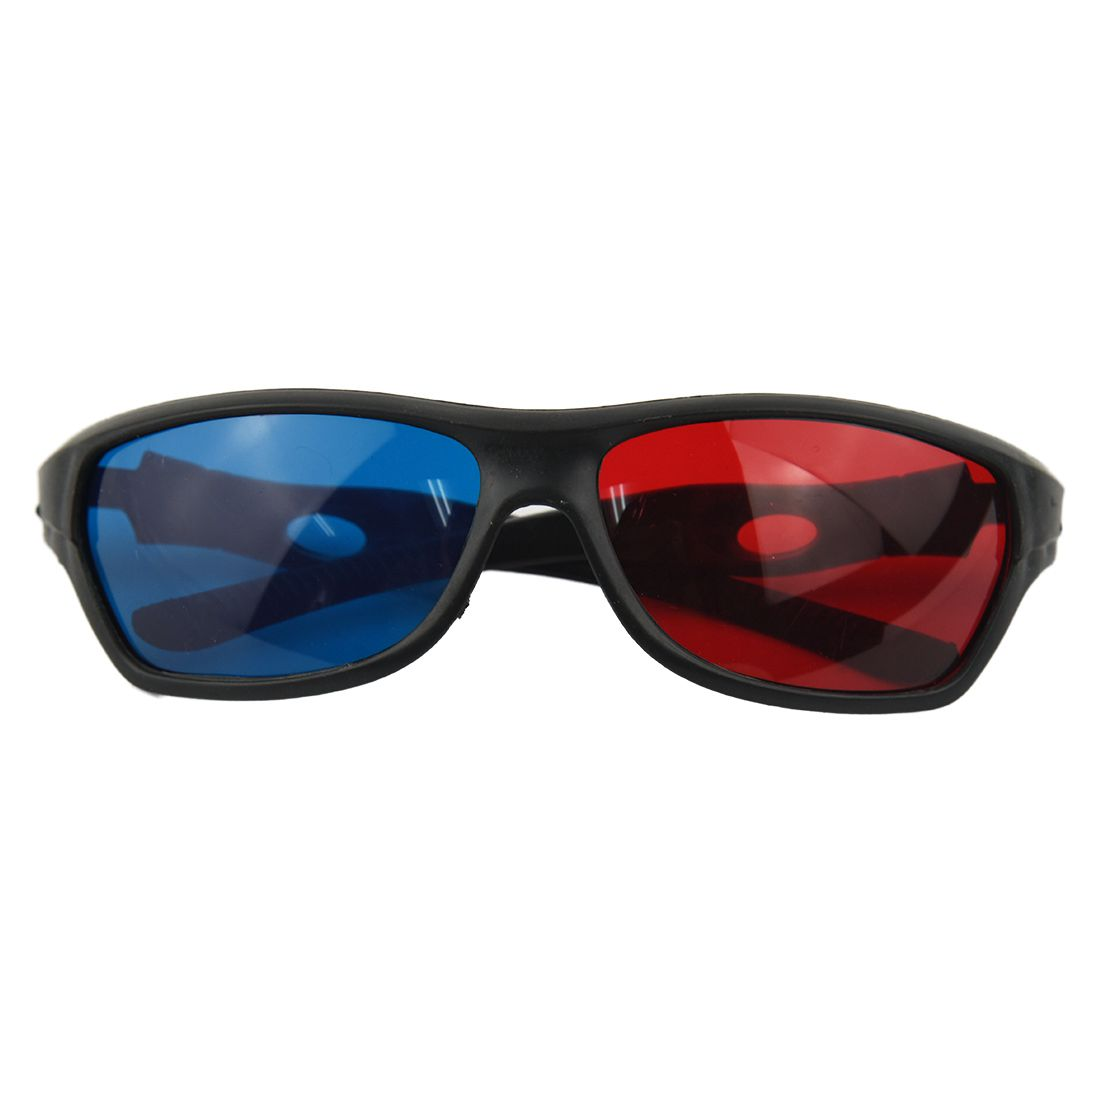 MOOL Fasdga Red-blue Anaglyph Simple style 3D Glasses 3D <font><b>movie</b></font> game (Extra Upgrade Style) image